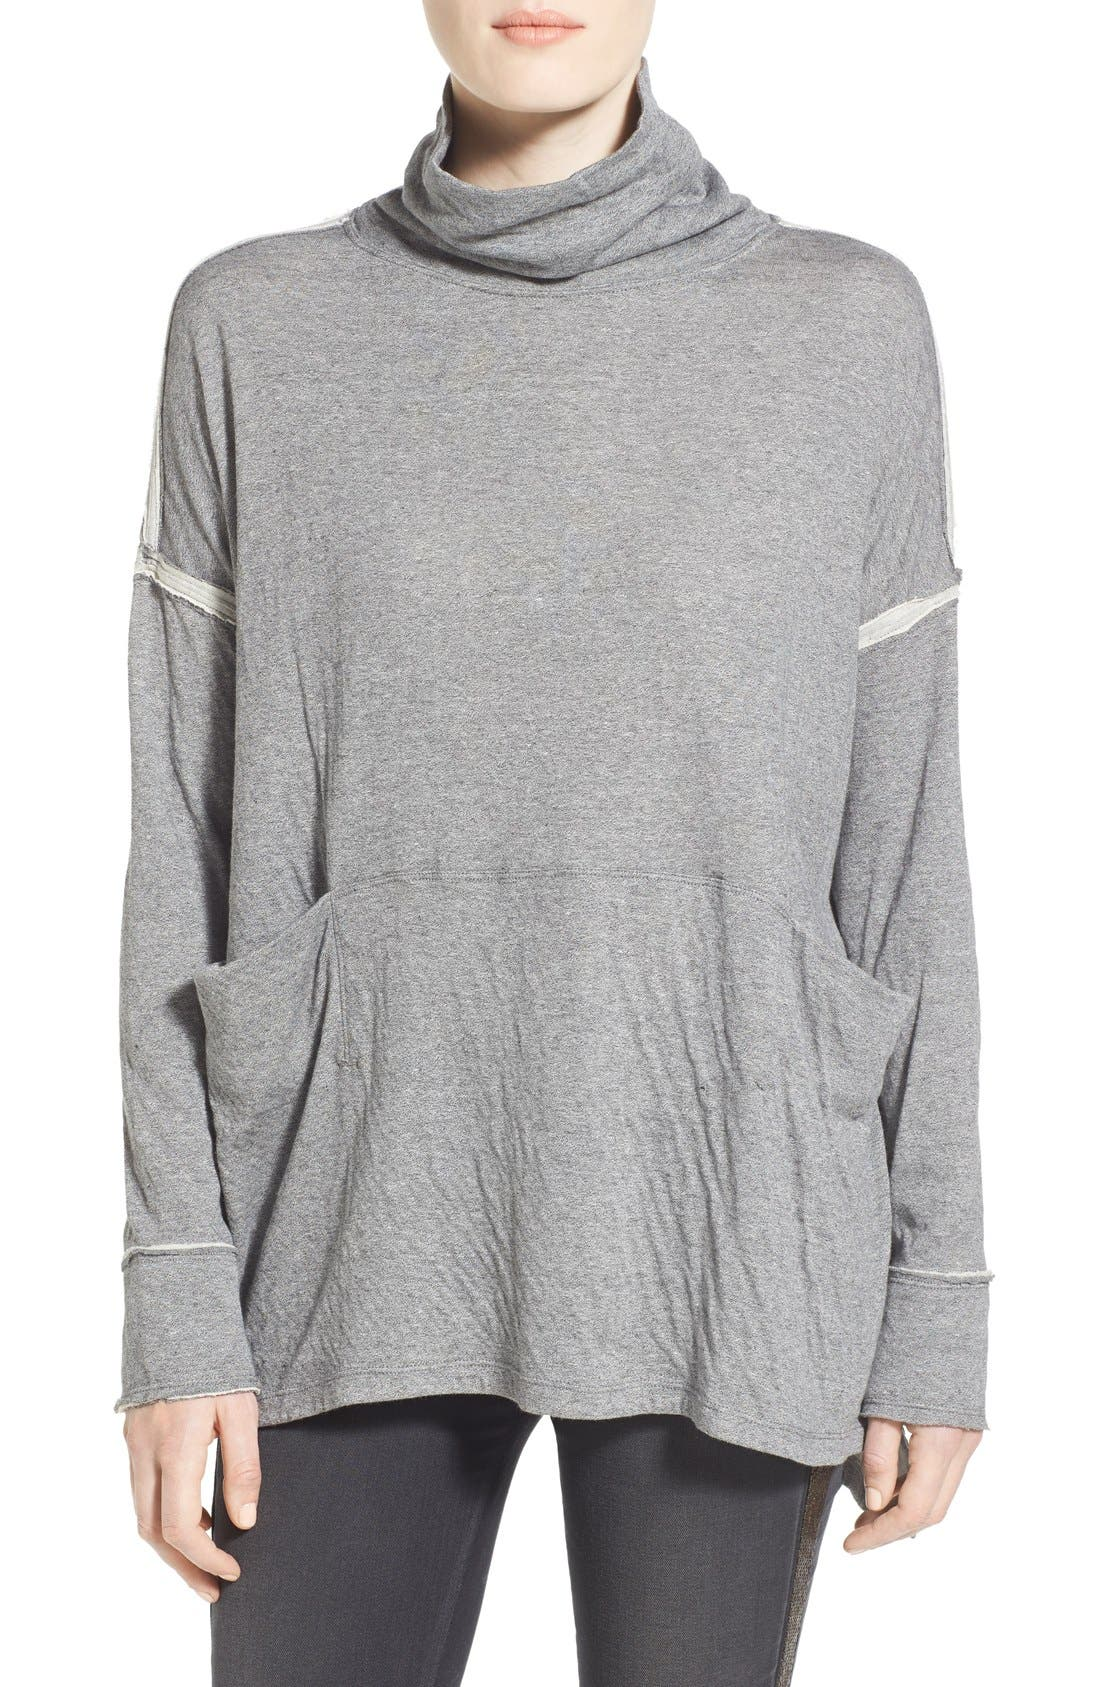 Alternate Image 1 Selected - Free People 'Long Flight' Pullover